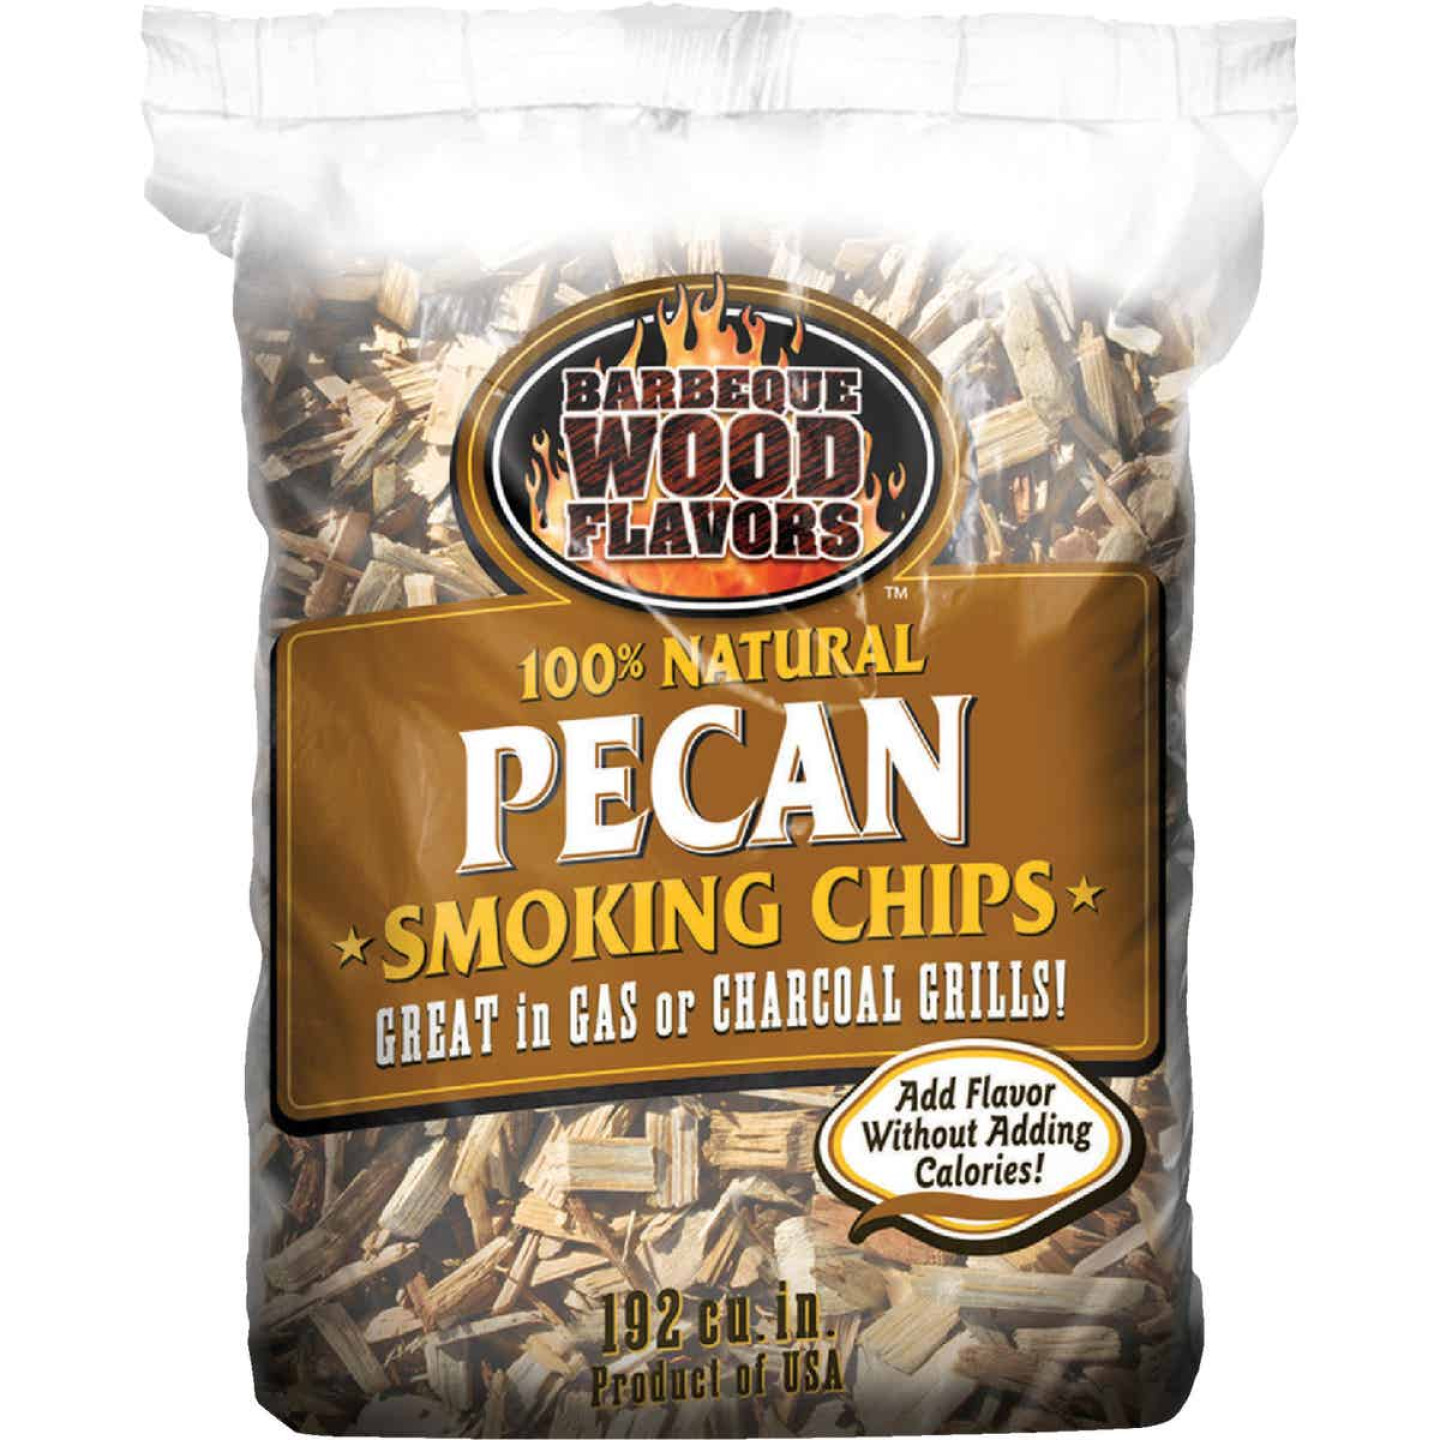 Barbeque Wood Flavors 192 Cu. In. Pecan Smoking Chips Image 1